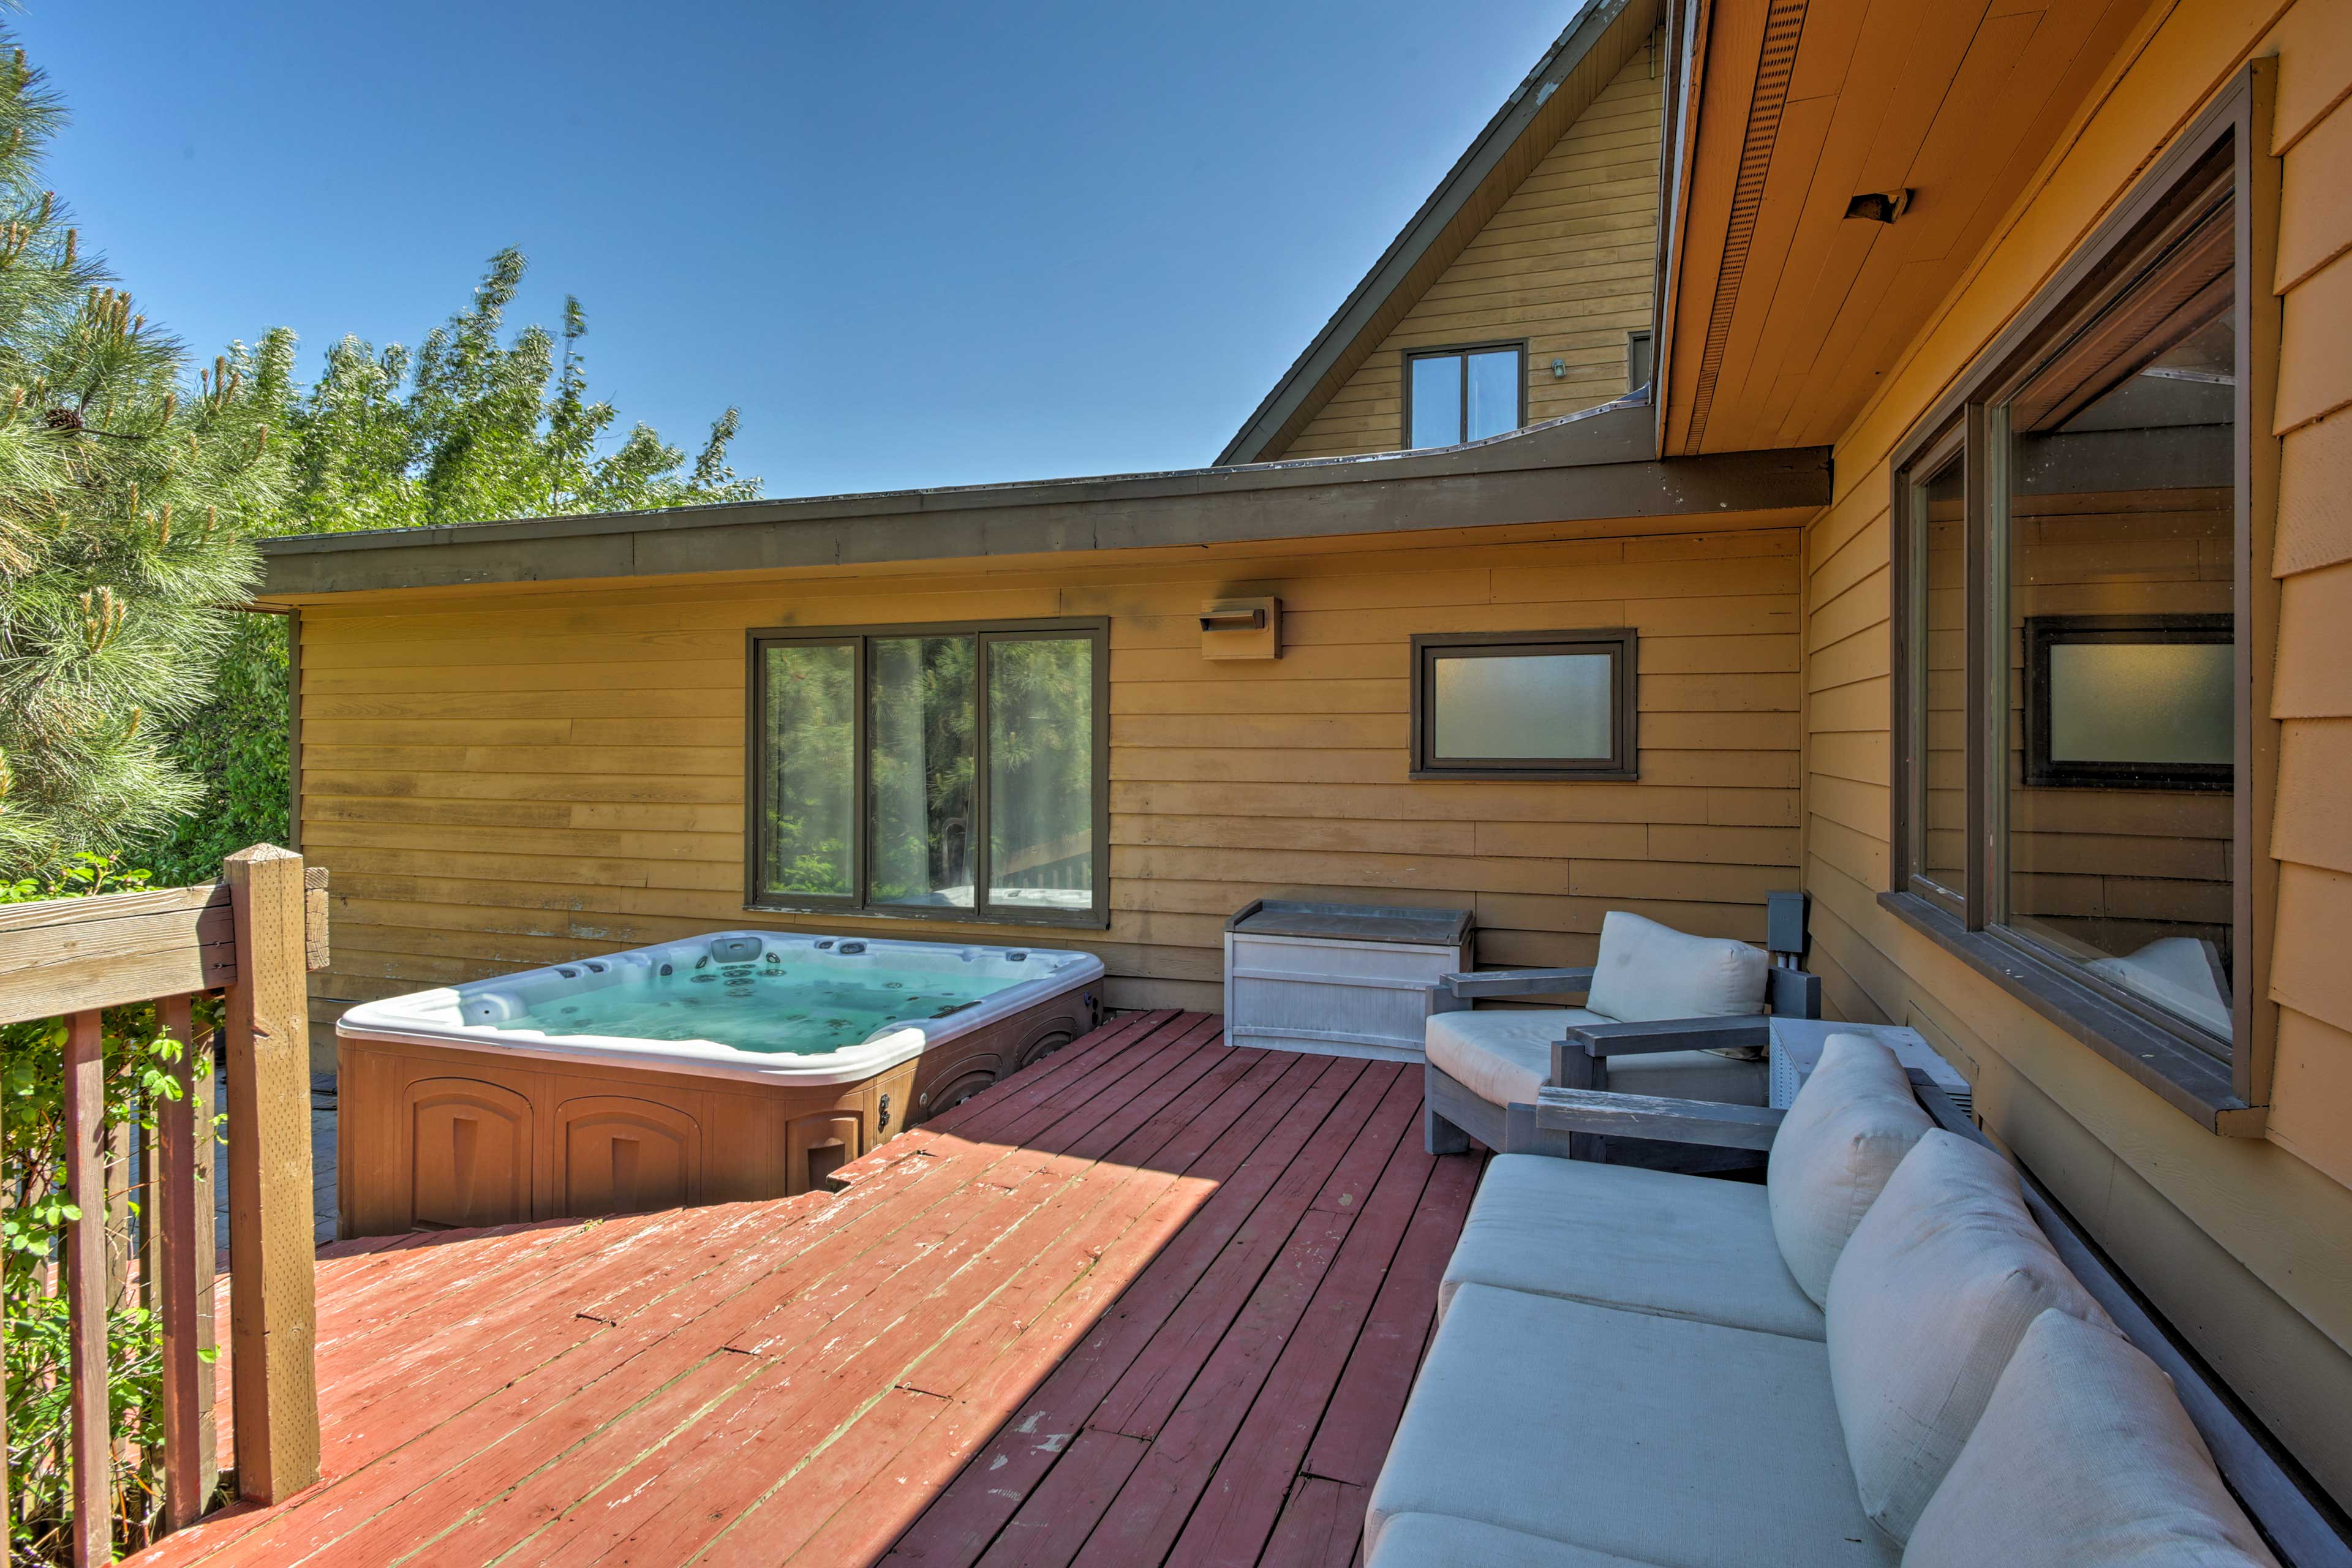 Plush seating lets you relax beside the 8-person hot tub.